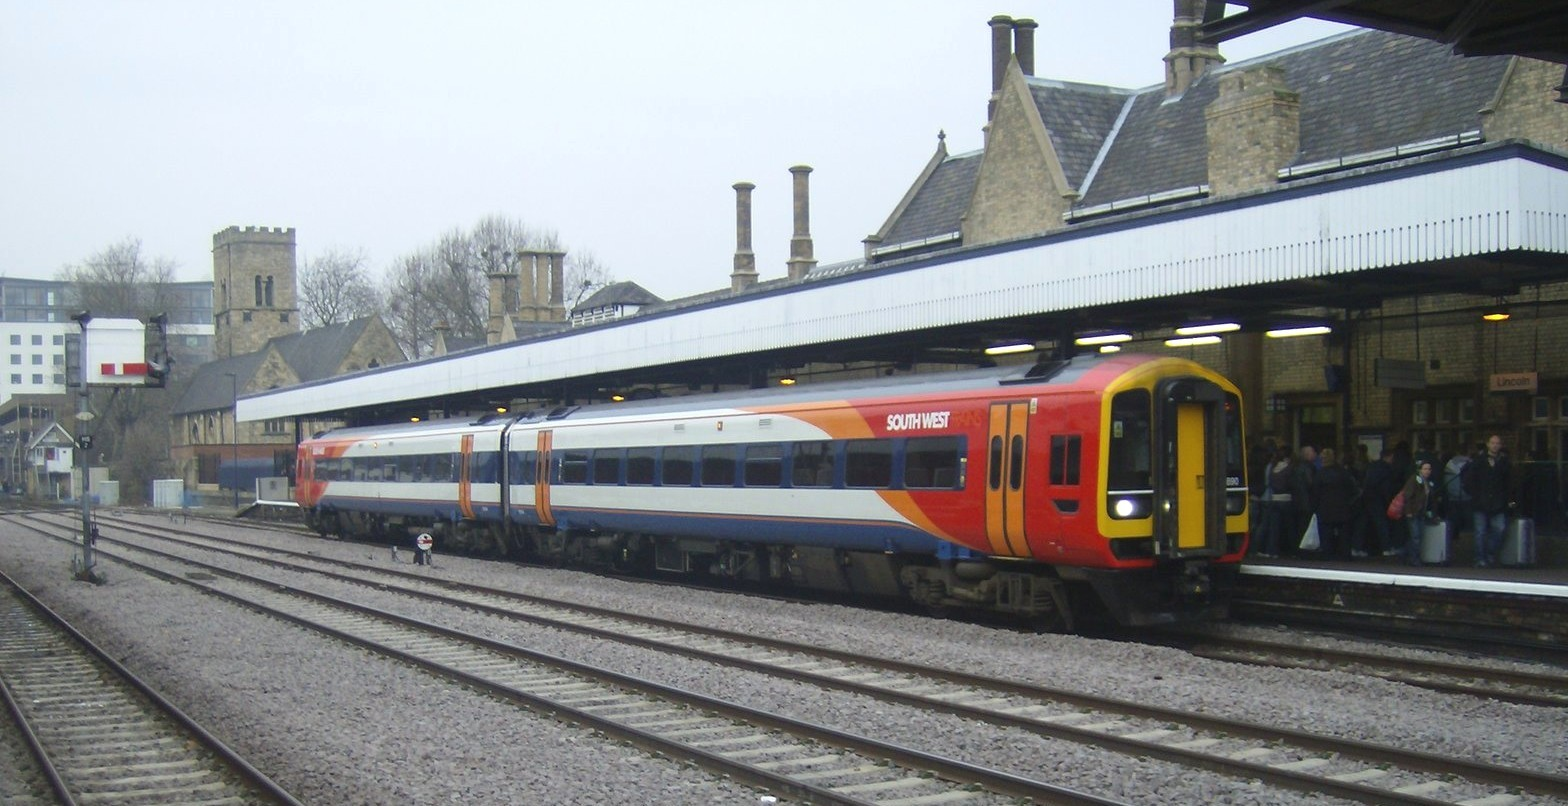 South West Trains is moving forward on plans for £210m worth of new trains